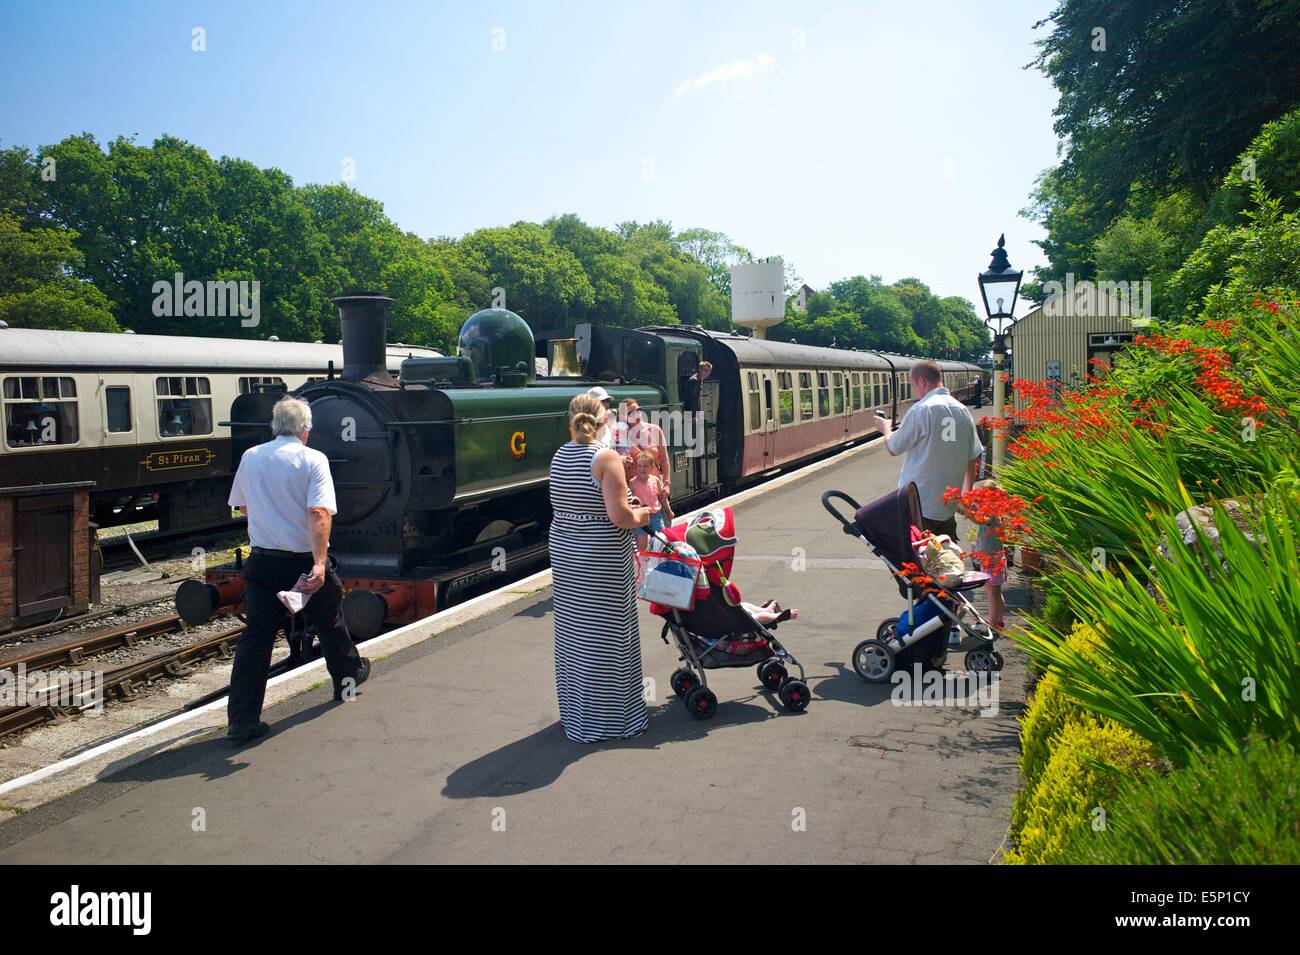 Passengers watch a steam train arrive at Bodmin General station on the Bodmin and Wenford Railway, Cornwall, UK - Stock Image